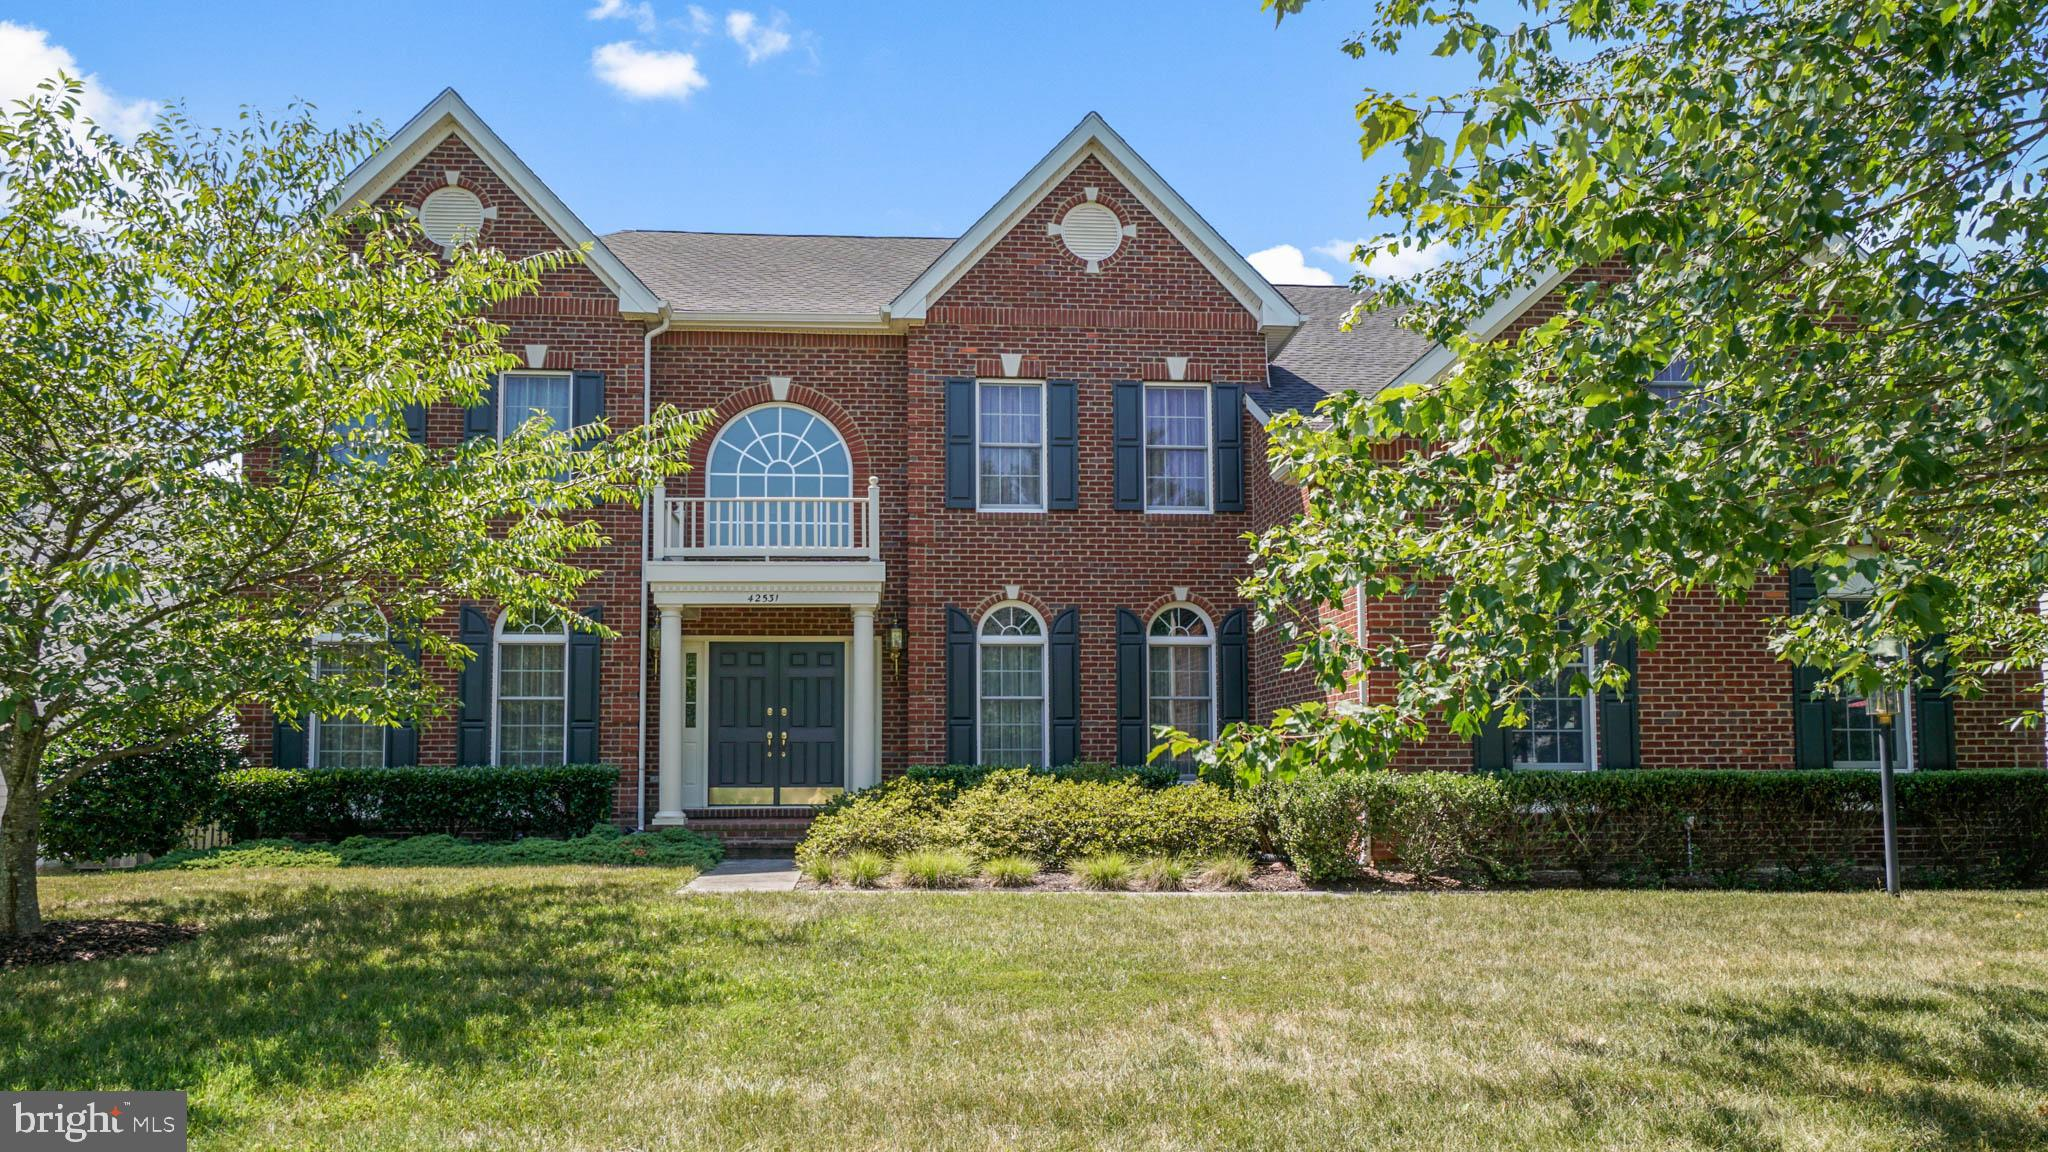 42531 LONGACRE DRIVE, CHANTILLY, VA 20152